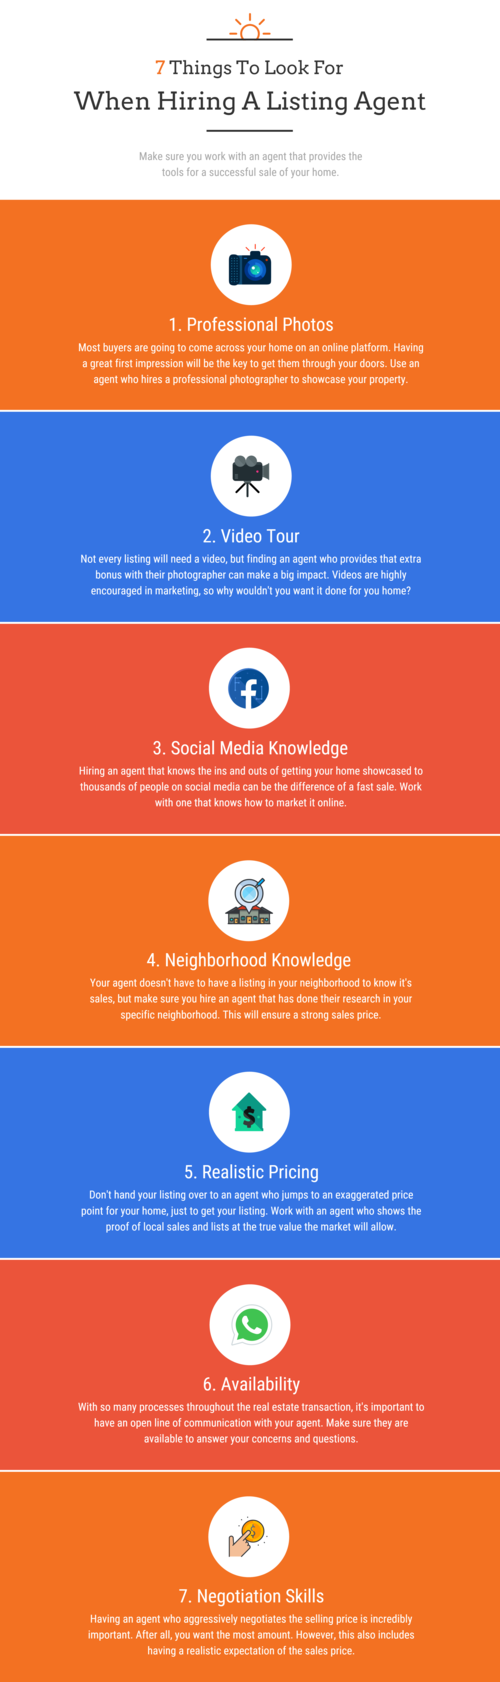 7 Things To Look For When Hiring A Listing Agent Employee Onboarding Visual Content Marketing Infographic